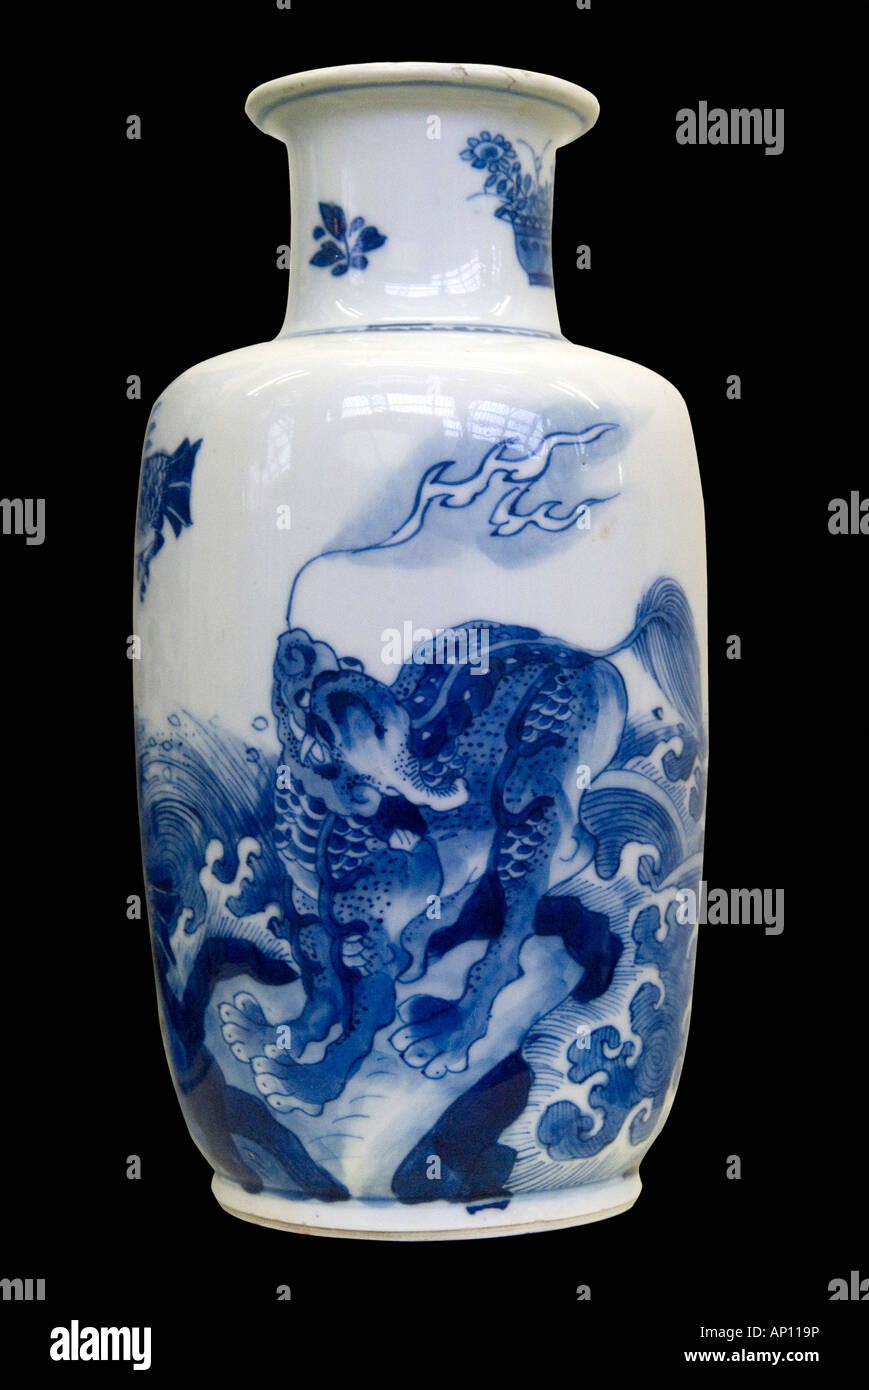 ming dynasty dragon vase porcelain ceramic chinese fire fierce symetry balance grace harmony northeast china asia